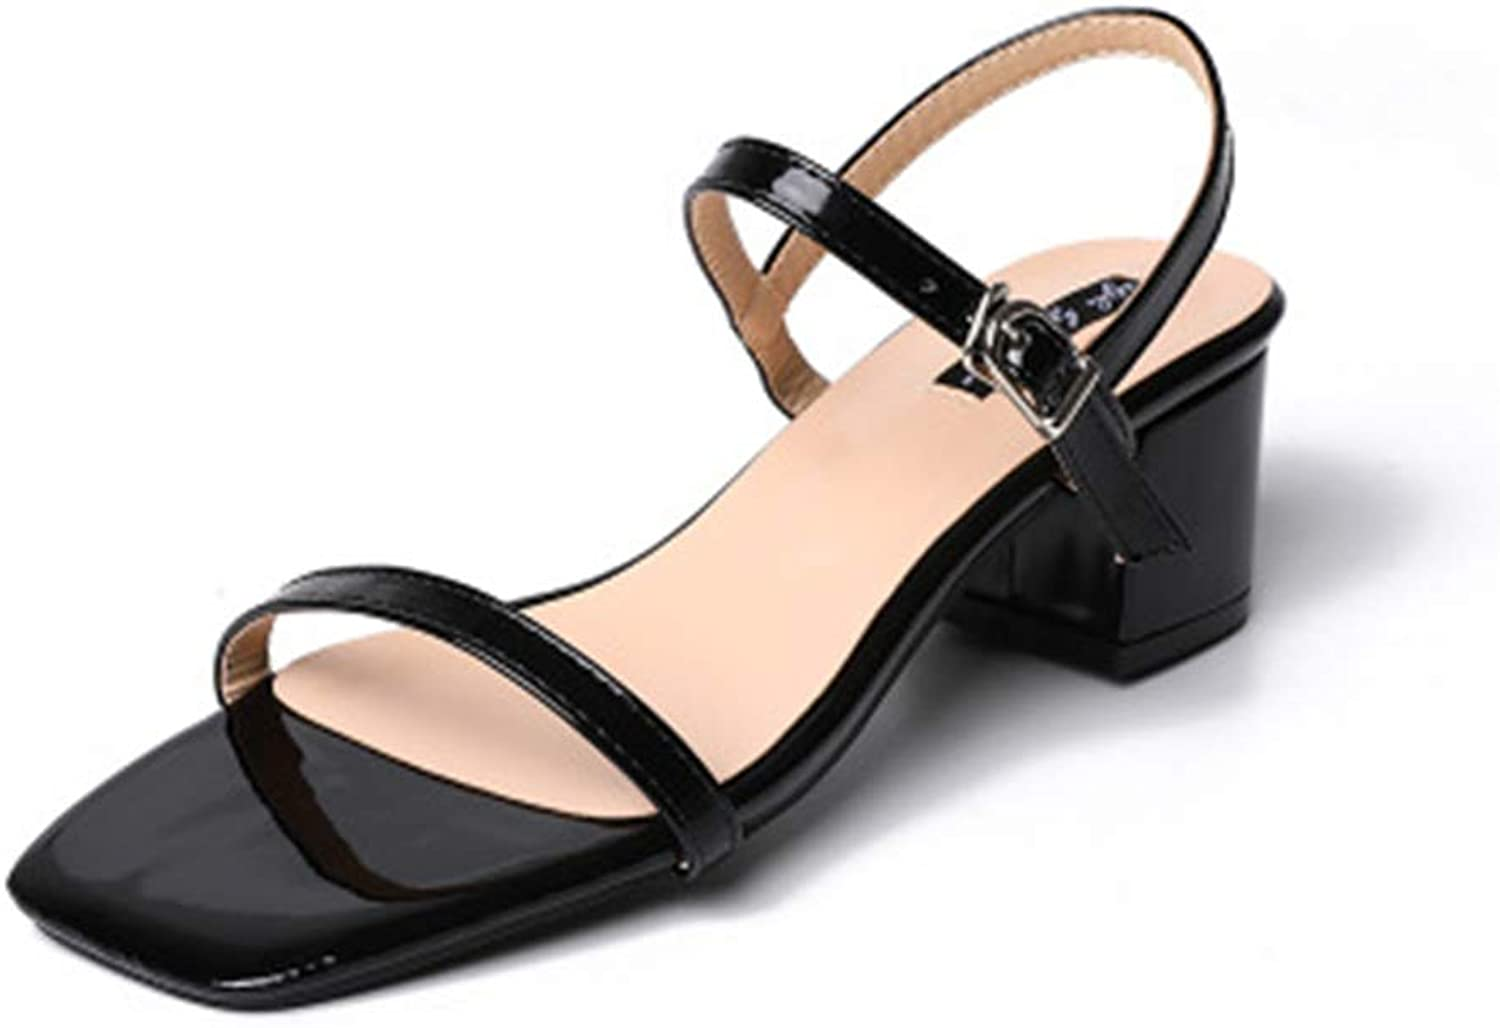 Duduxiaomaibu Women's High Chunky Heel Buckle Ankle Strap Sandals